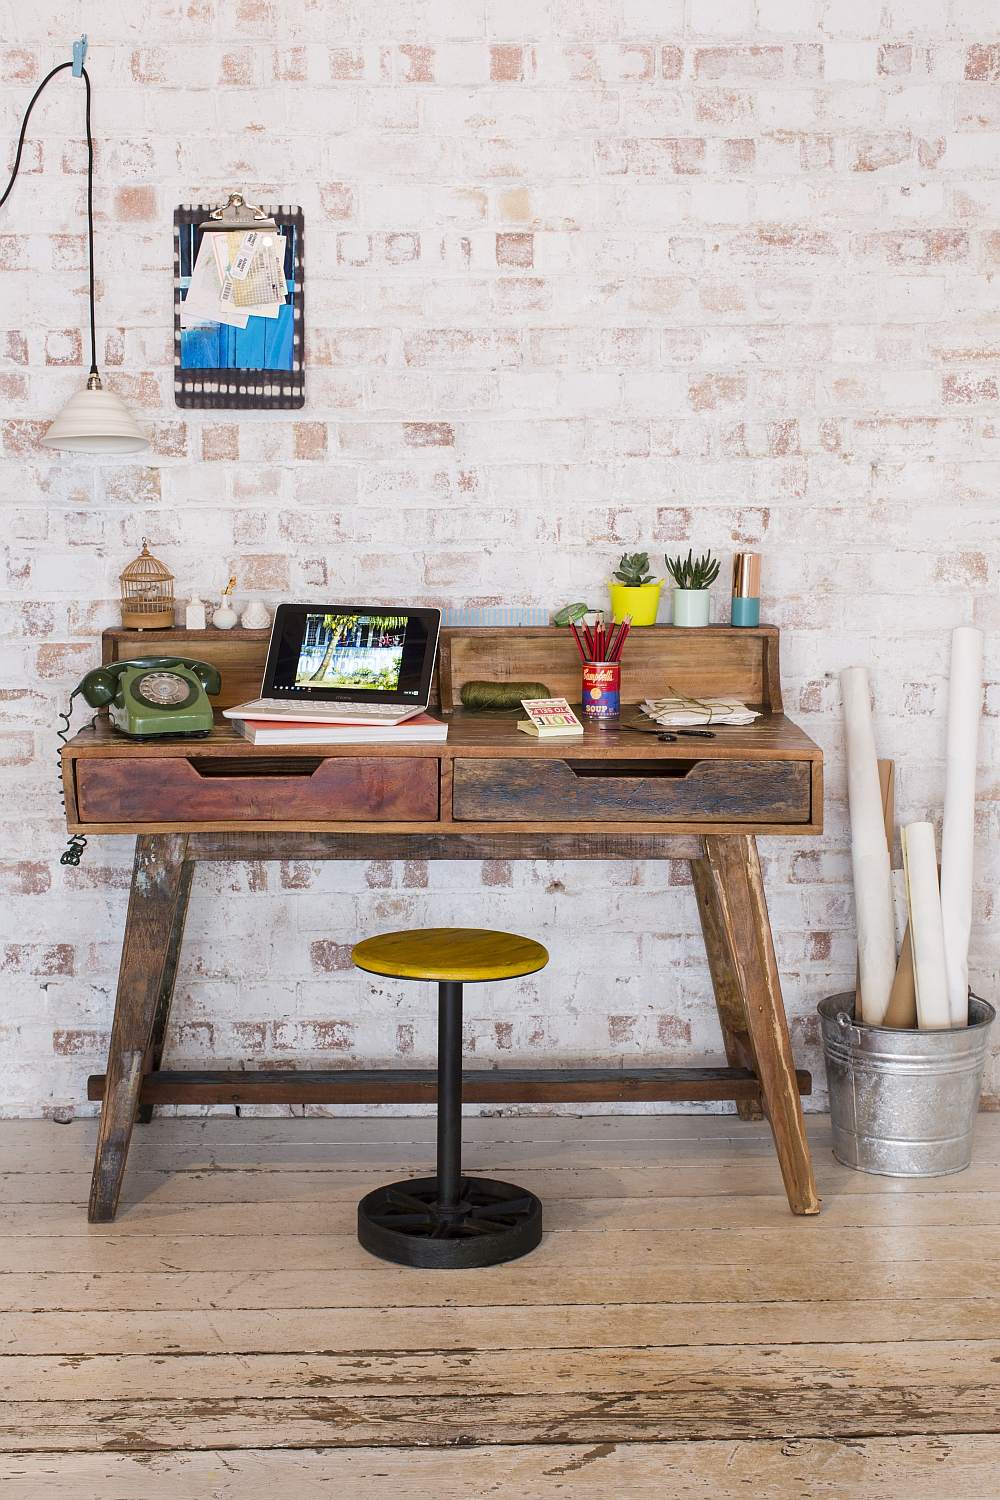 Unique reclaimed wood desk with vintage style